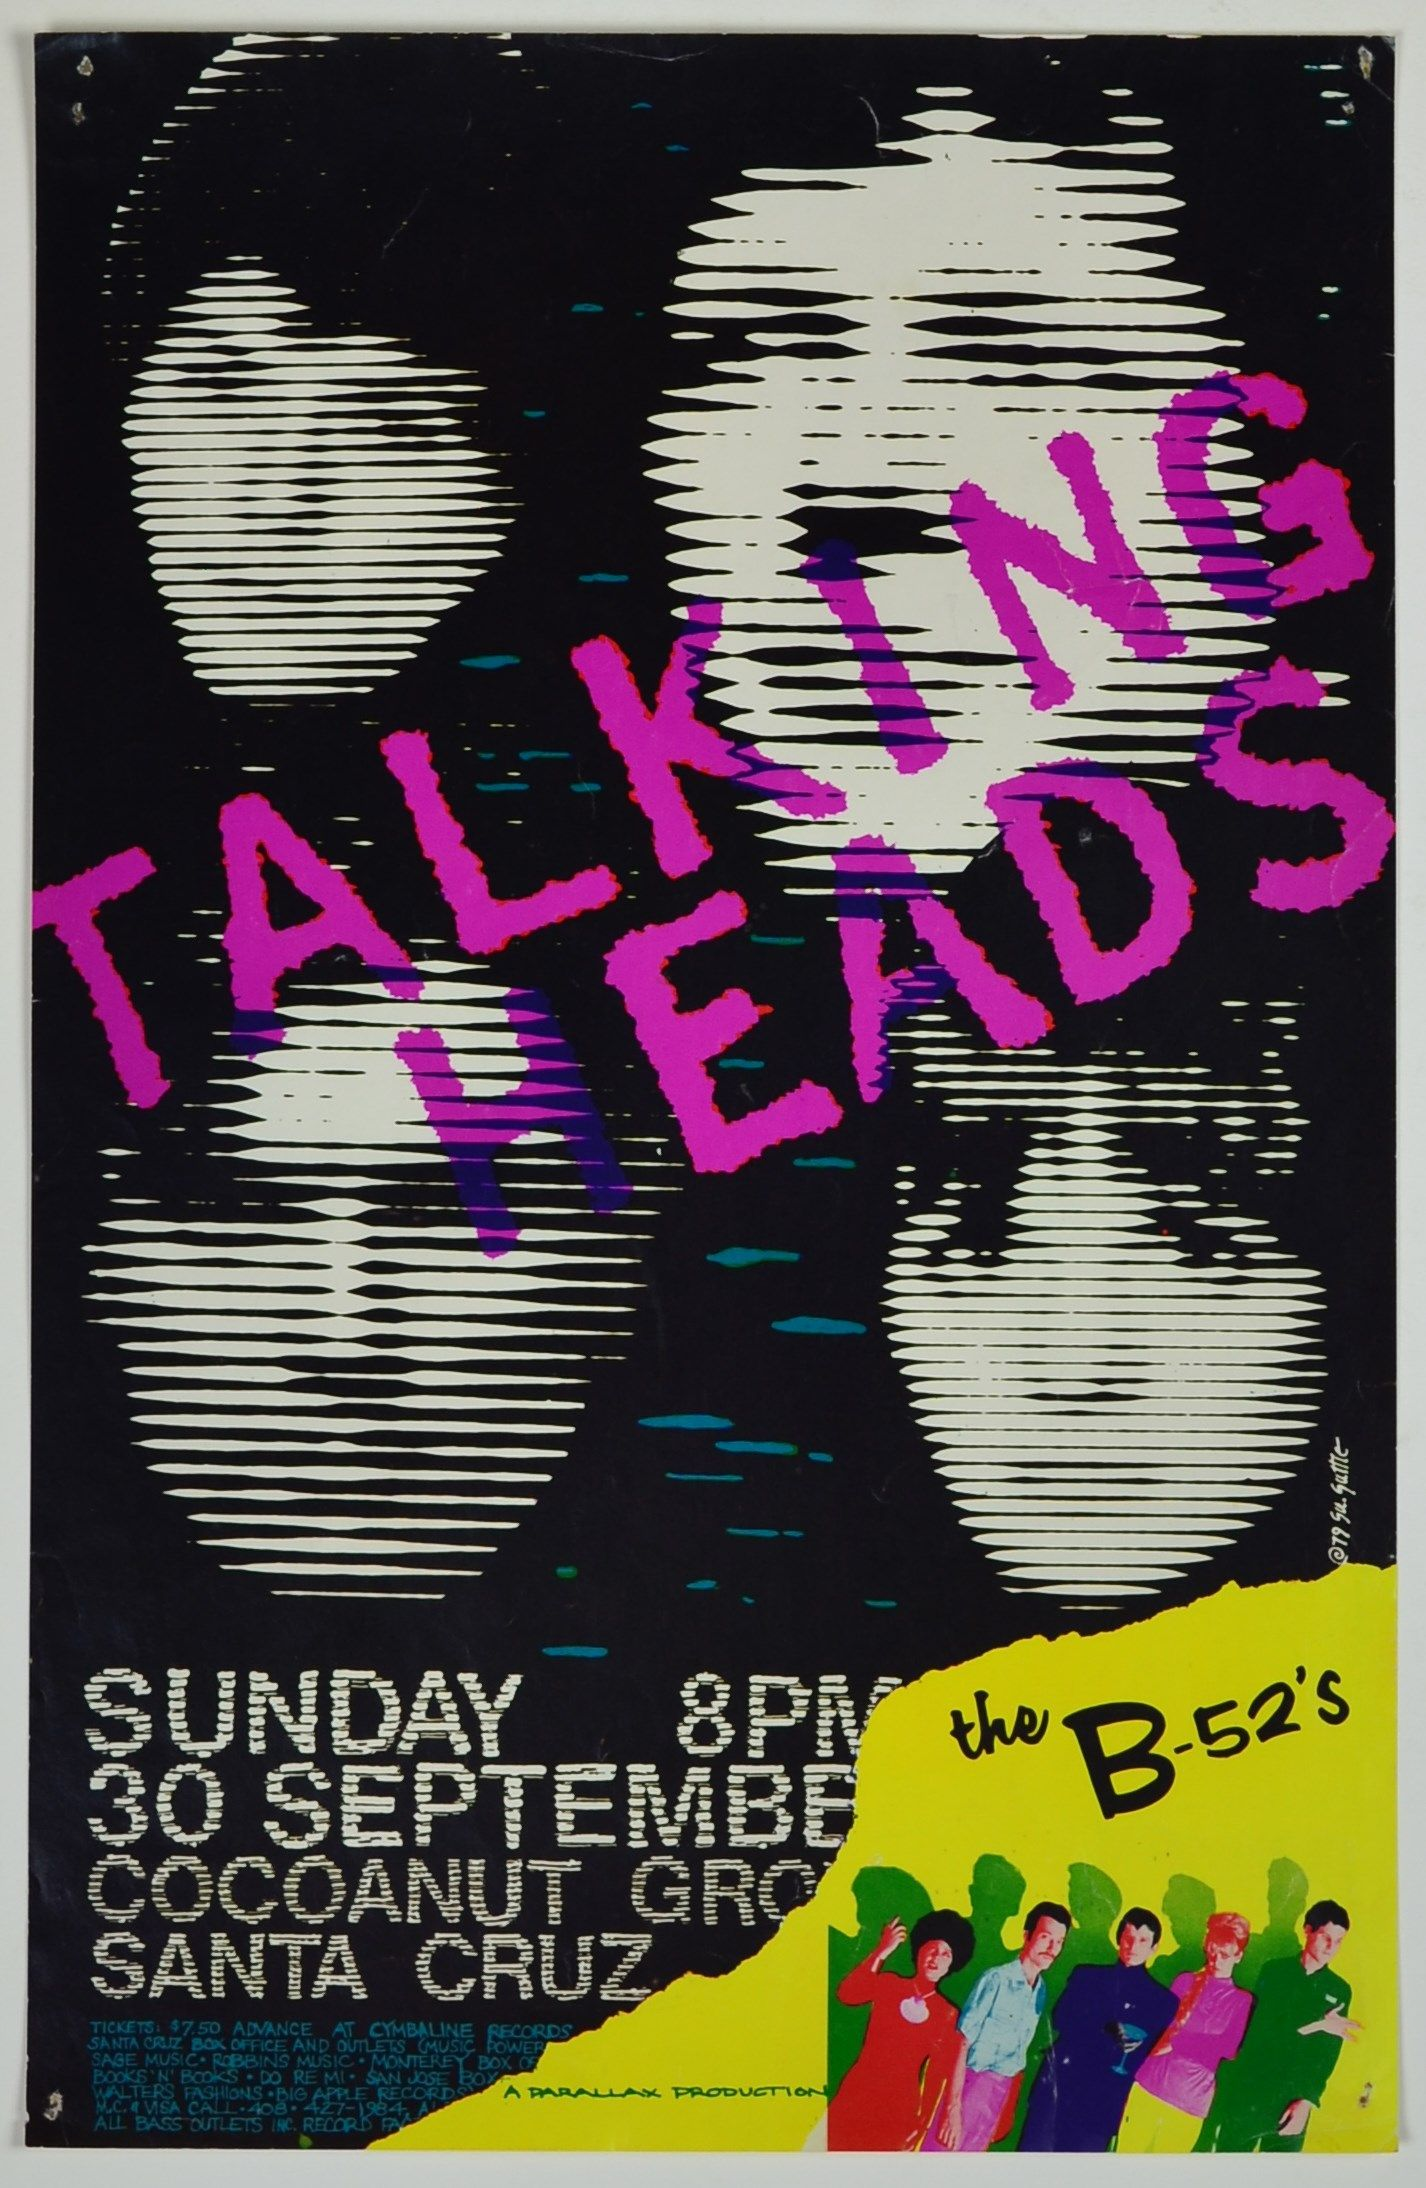 Wayback Machine Asheville 1984 >> Here Is A Talking Heads And B 52 S Concert Poster From The Cocoanut